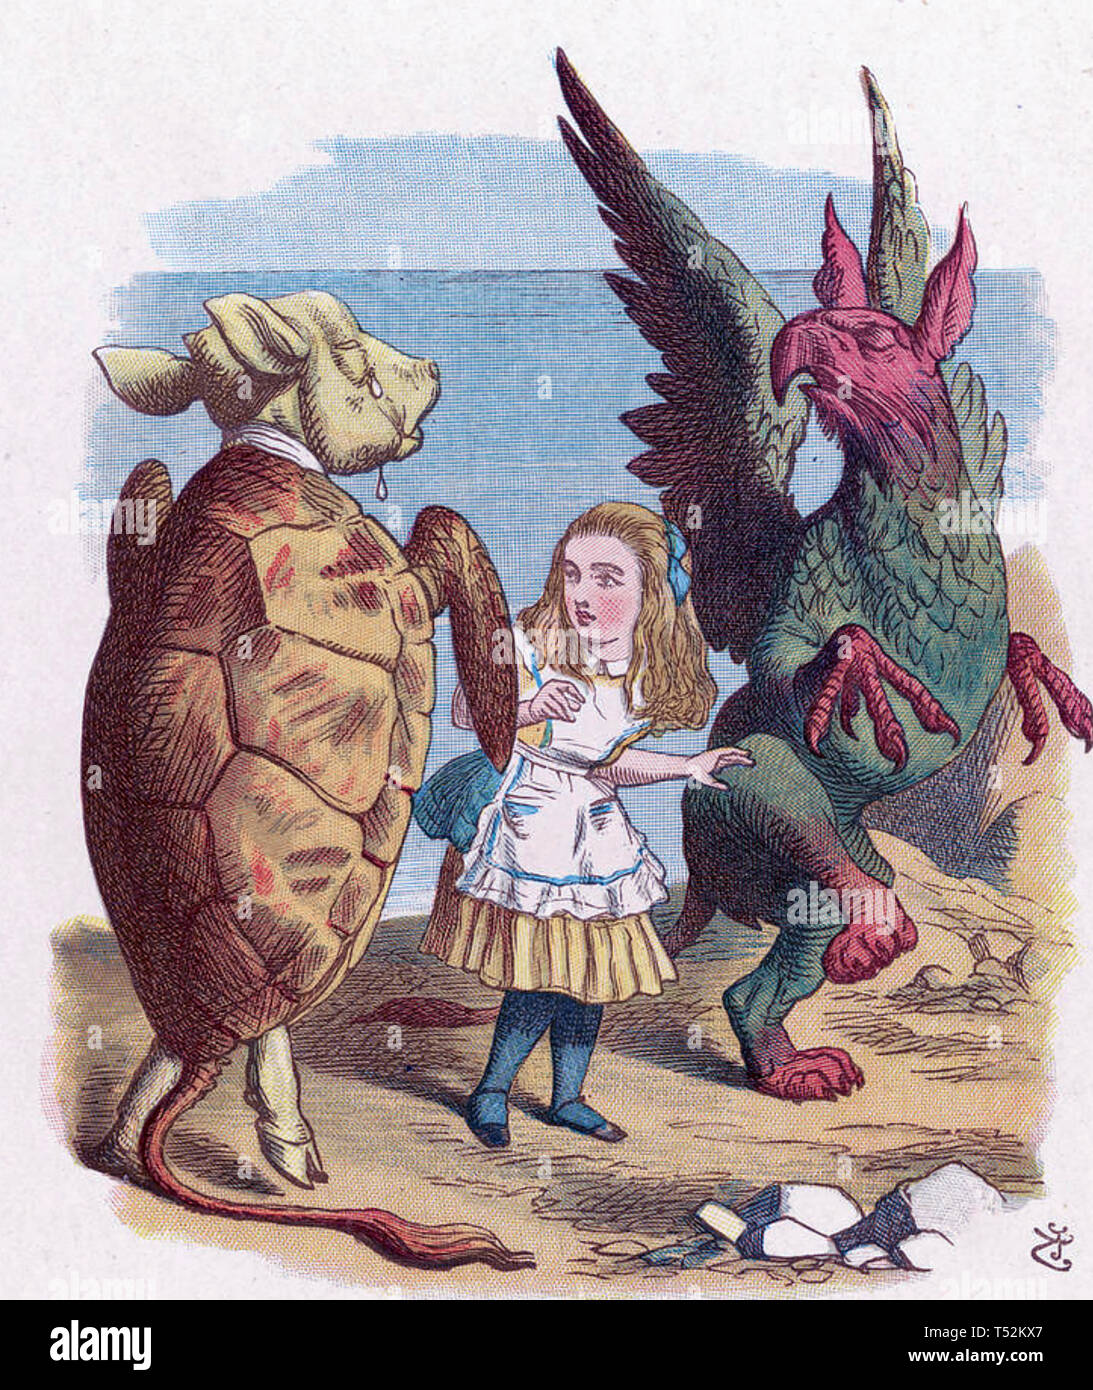 ALICE'S ADVENTURES IN WONDERLAND. Illustration from 1865 edition showing Alice with the Mock Turtle and the Gryphon - Stock Image